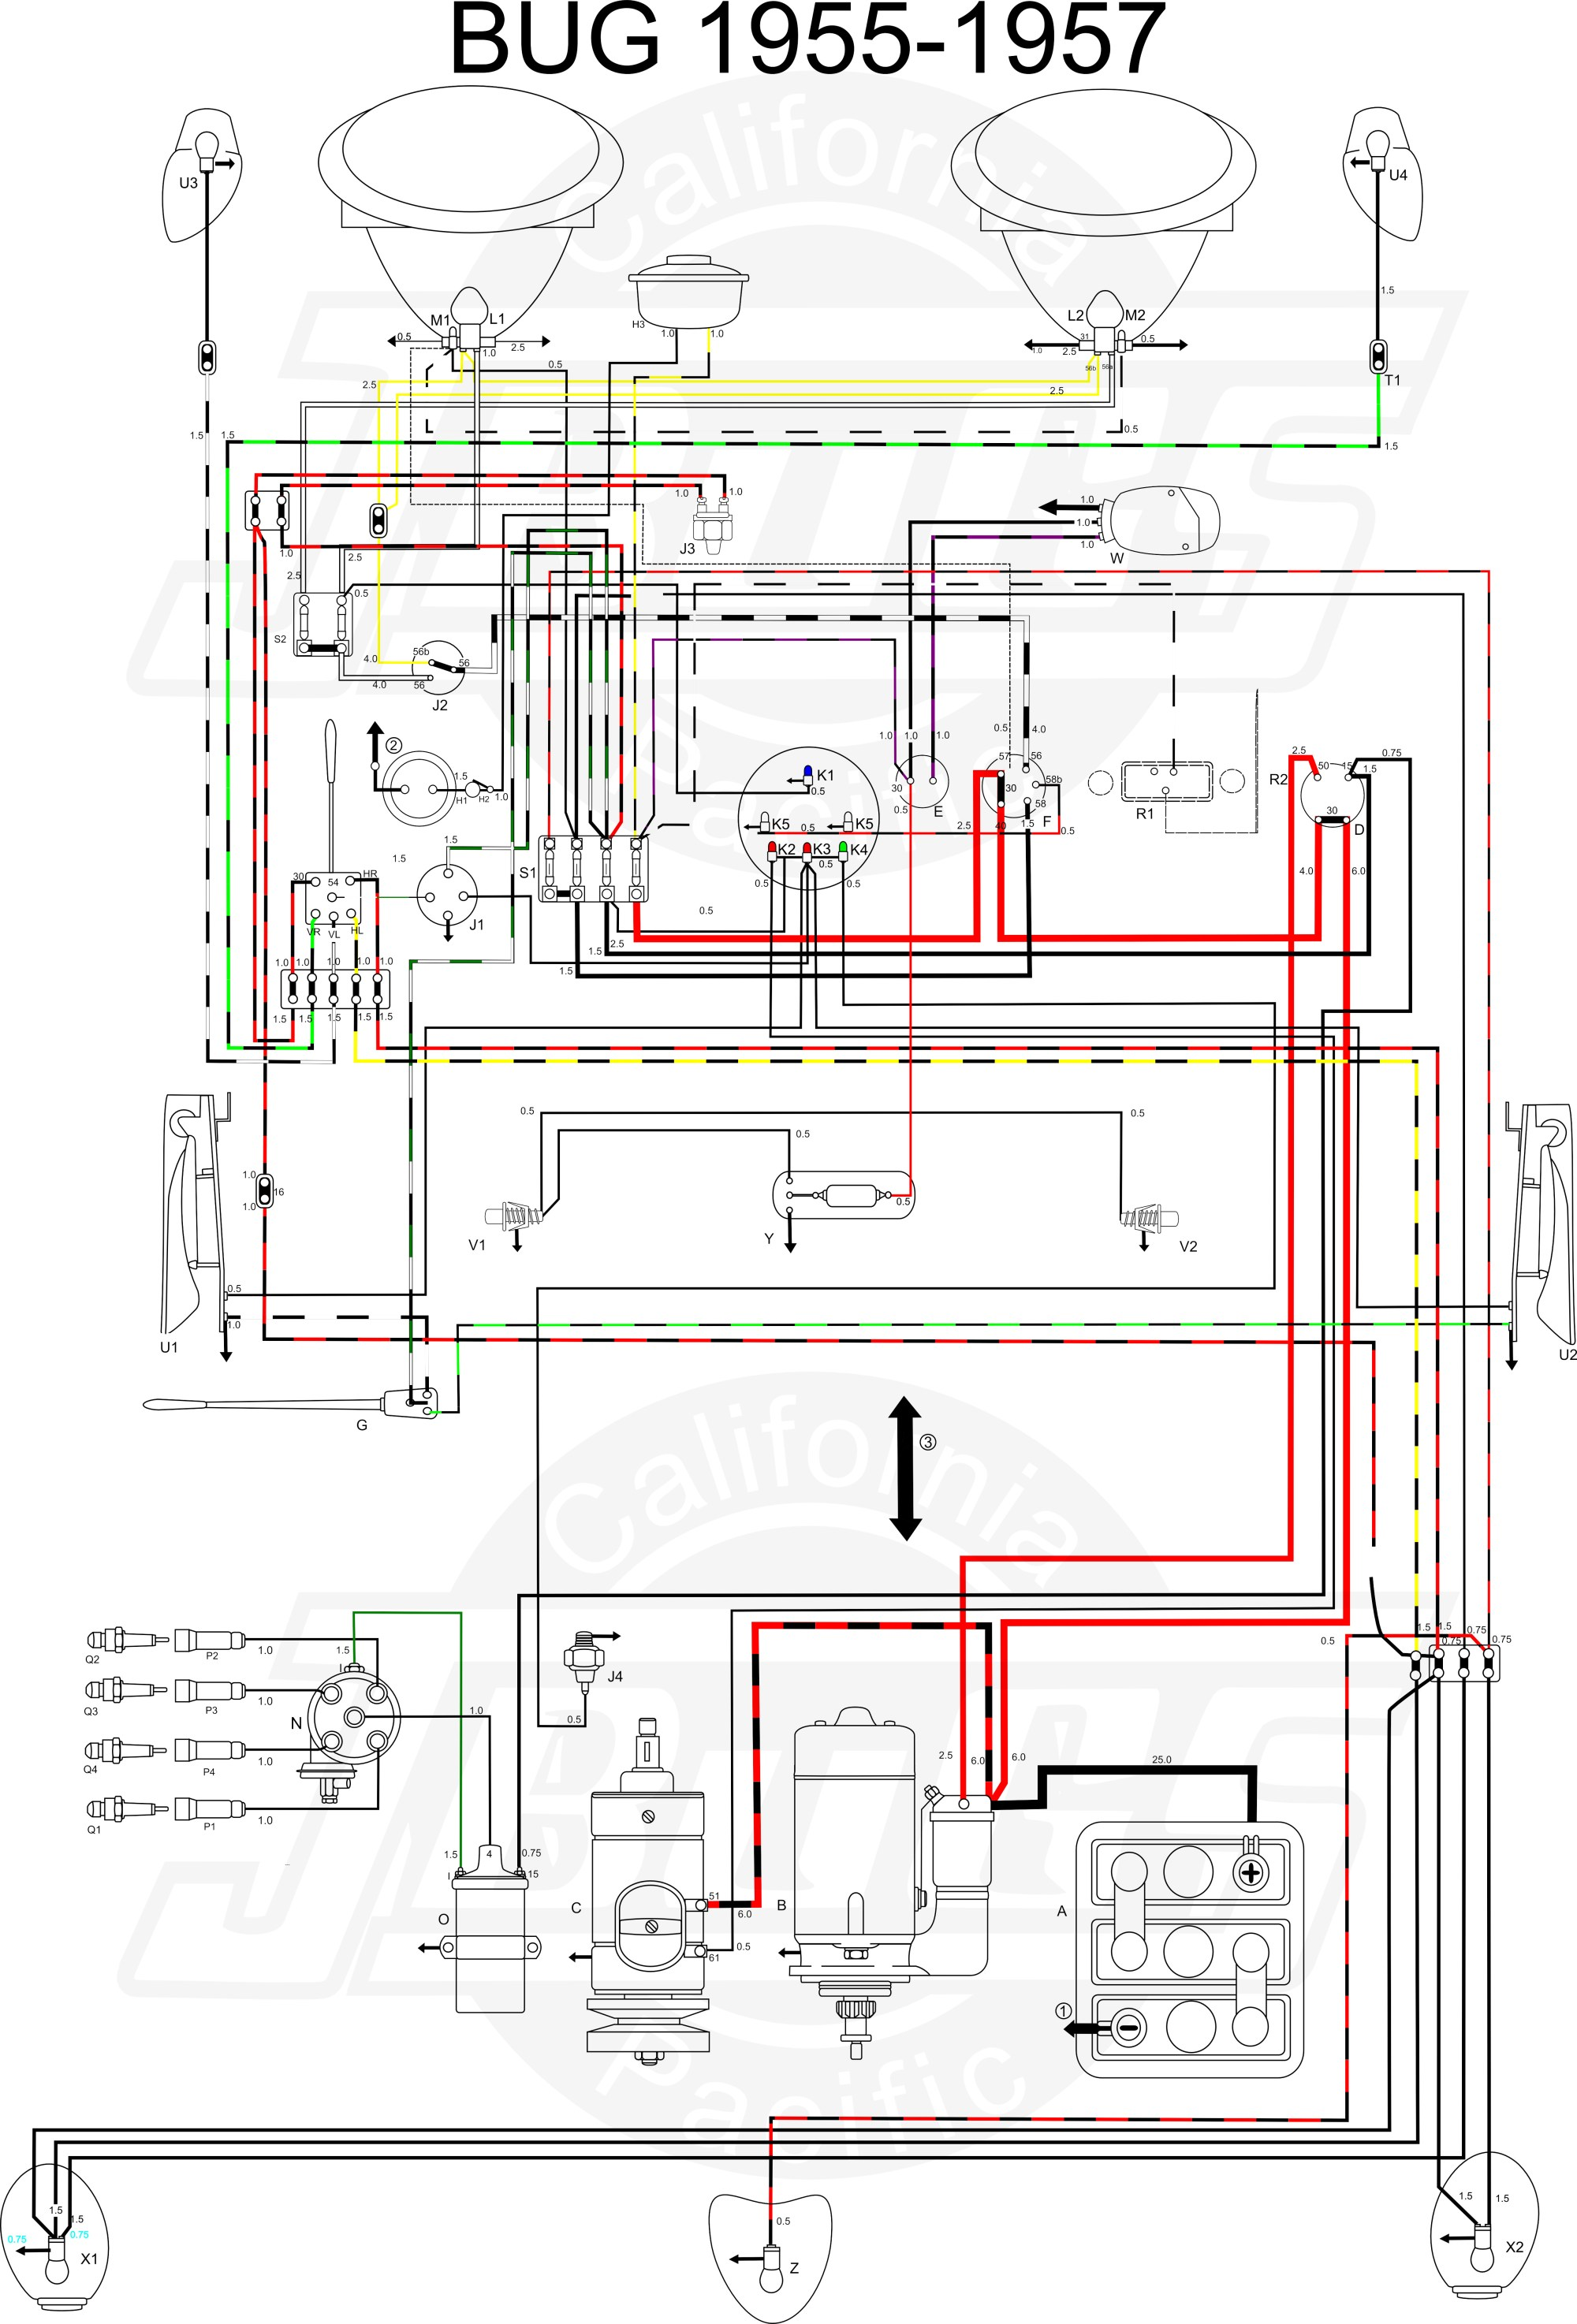 hight resolution of air cooled vw wiring diagram wiring diagram pass vw air cooled coil wiring diagram air cooled vw wiring diagram